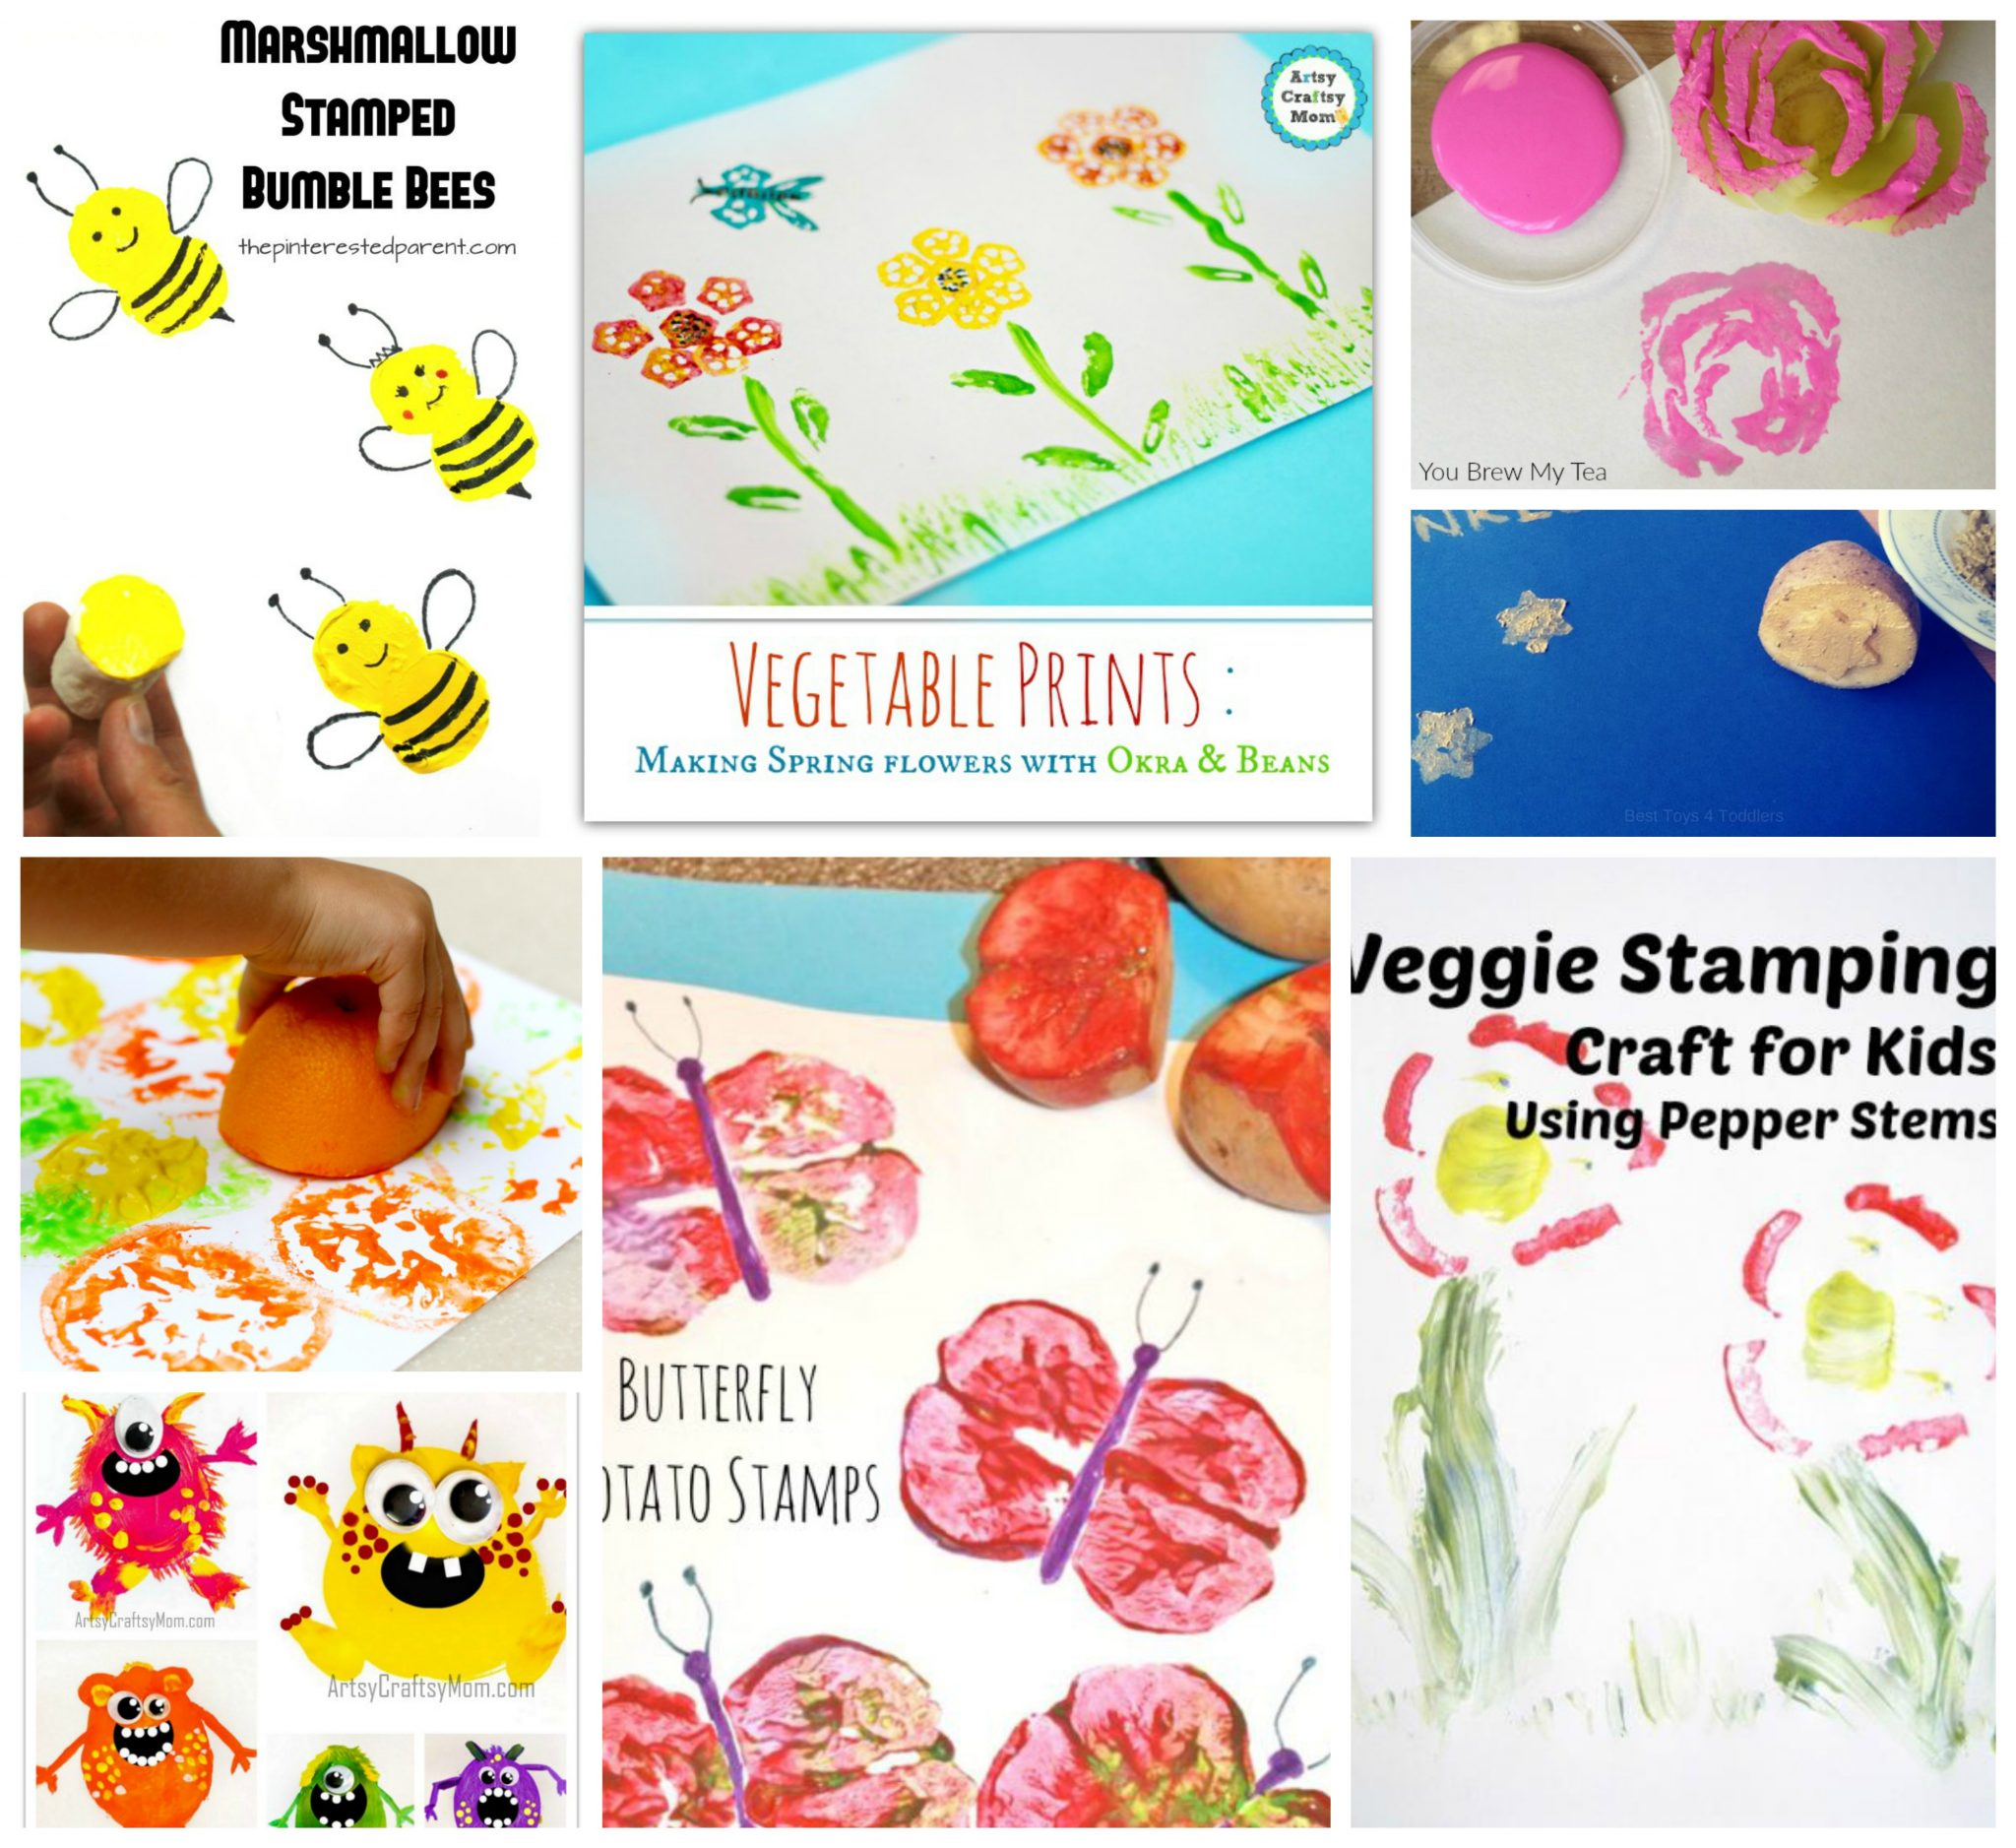 40 Printmaking And Stamping Ideas For Kids The Pinterested Parent